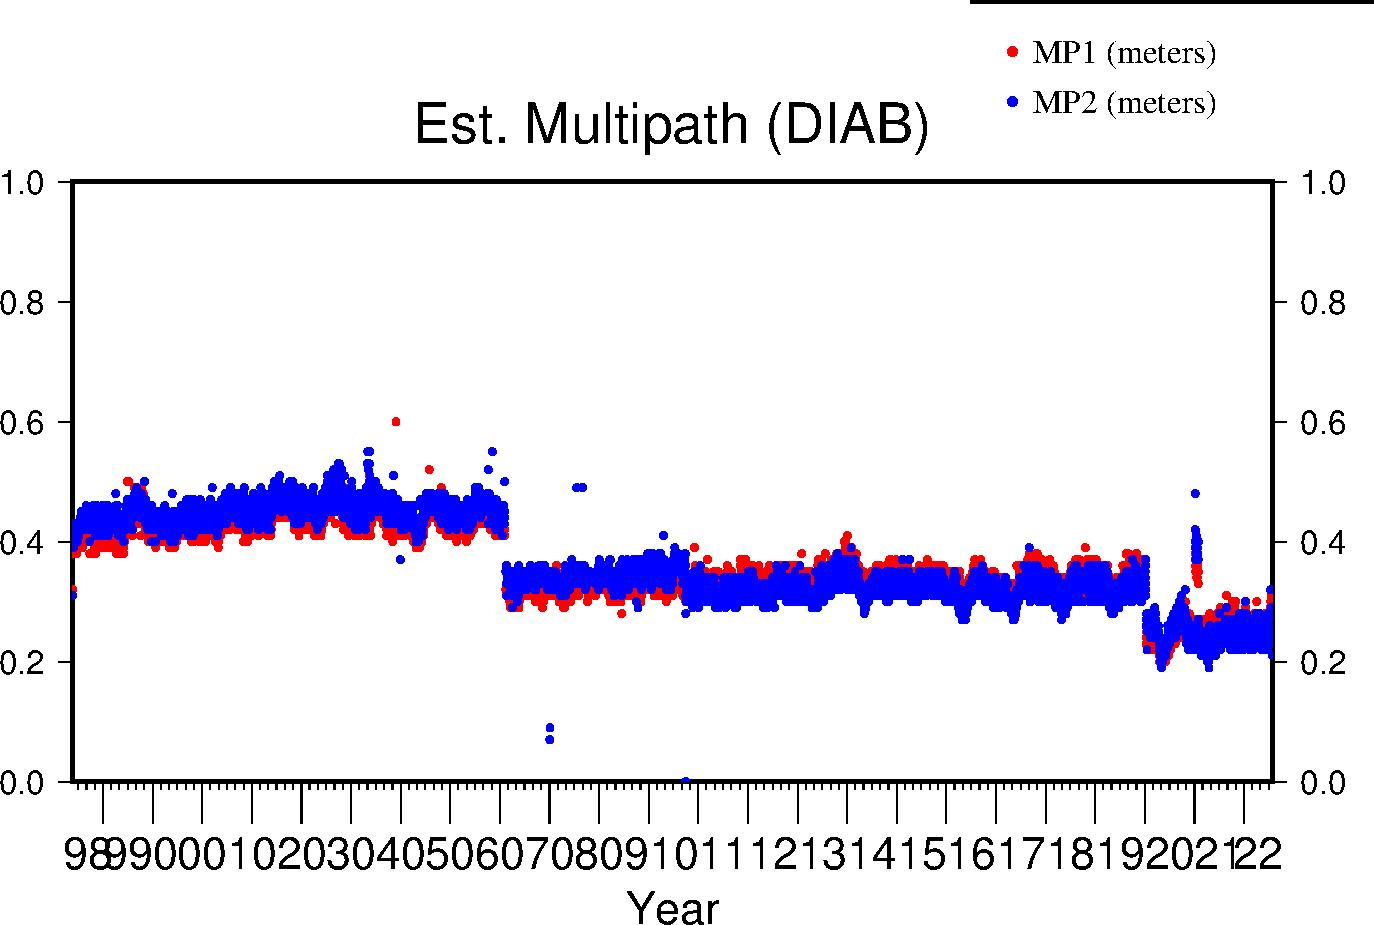 DIAB multipath lifetime